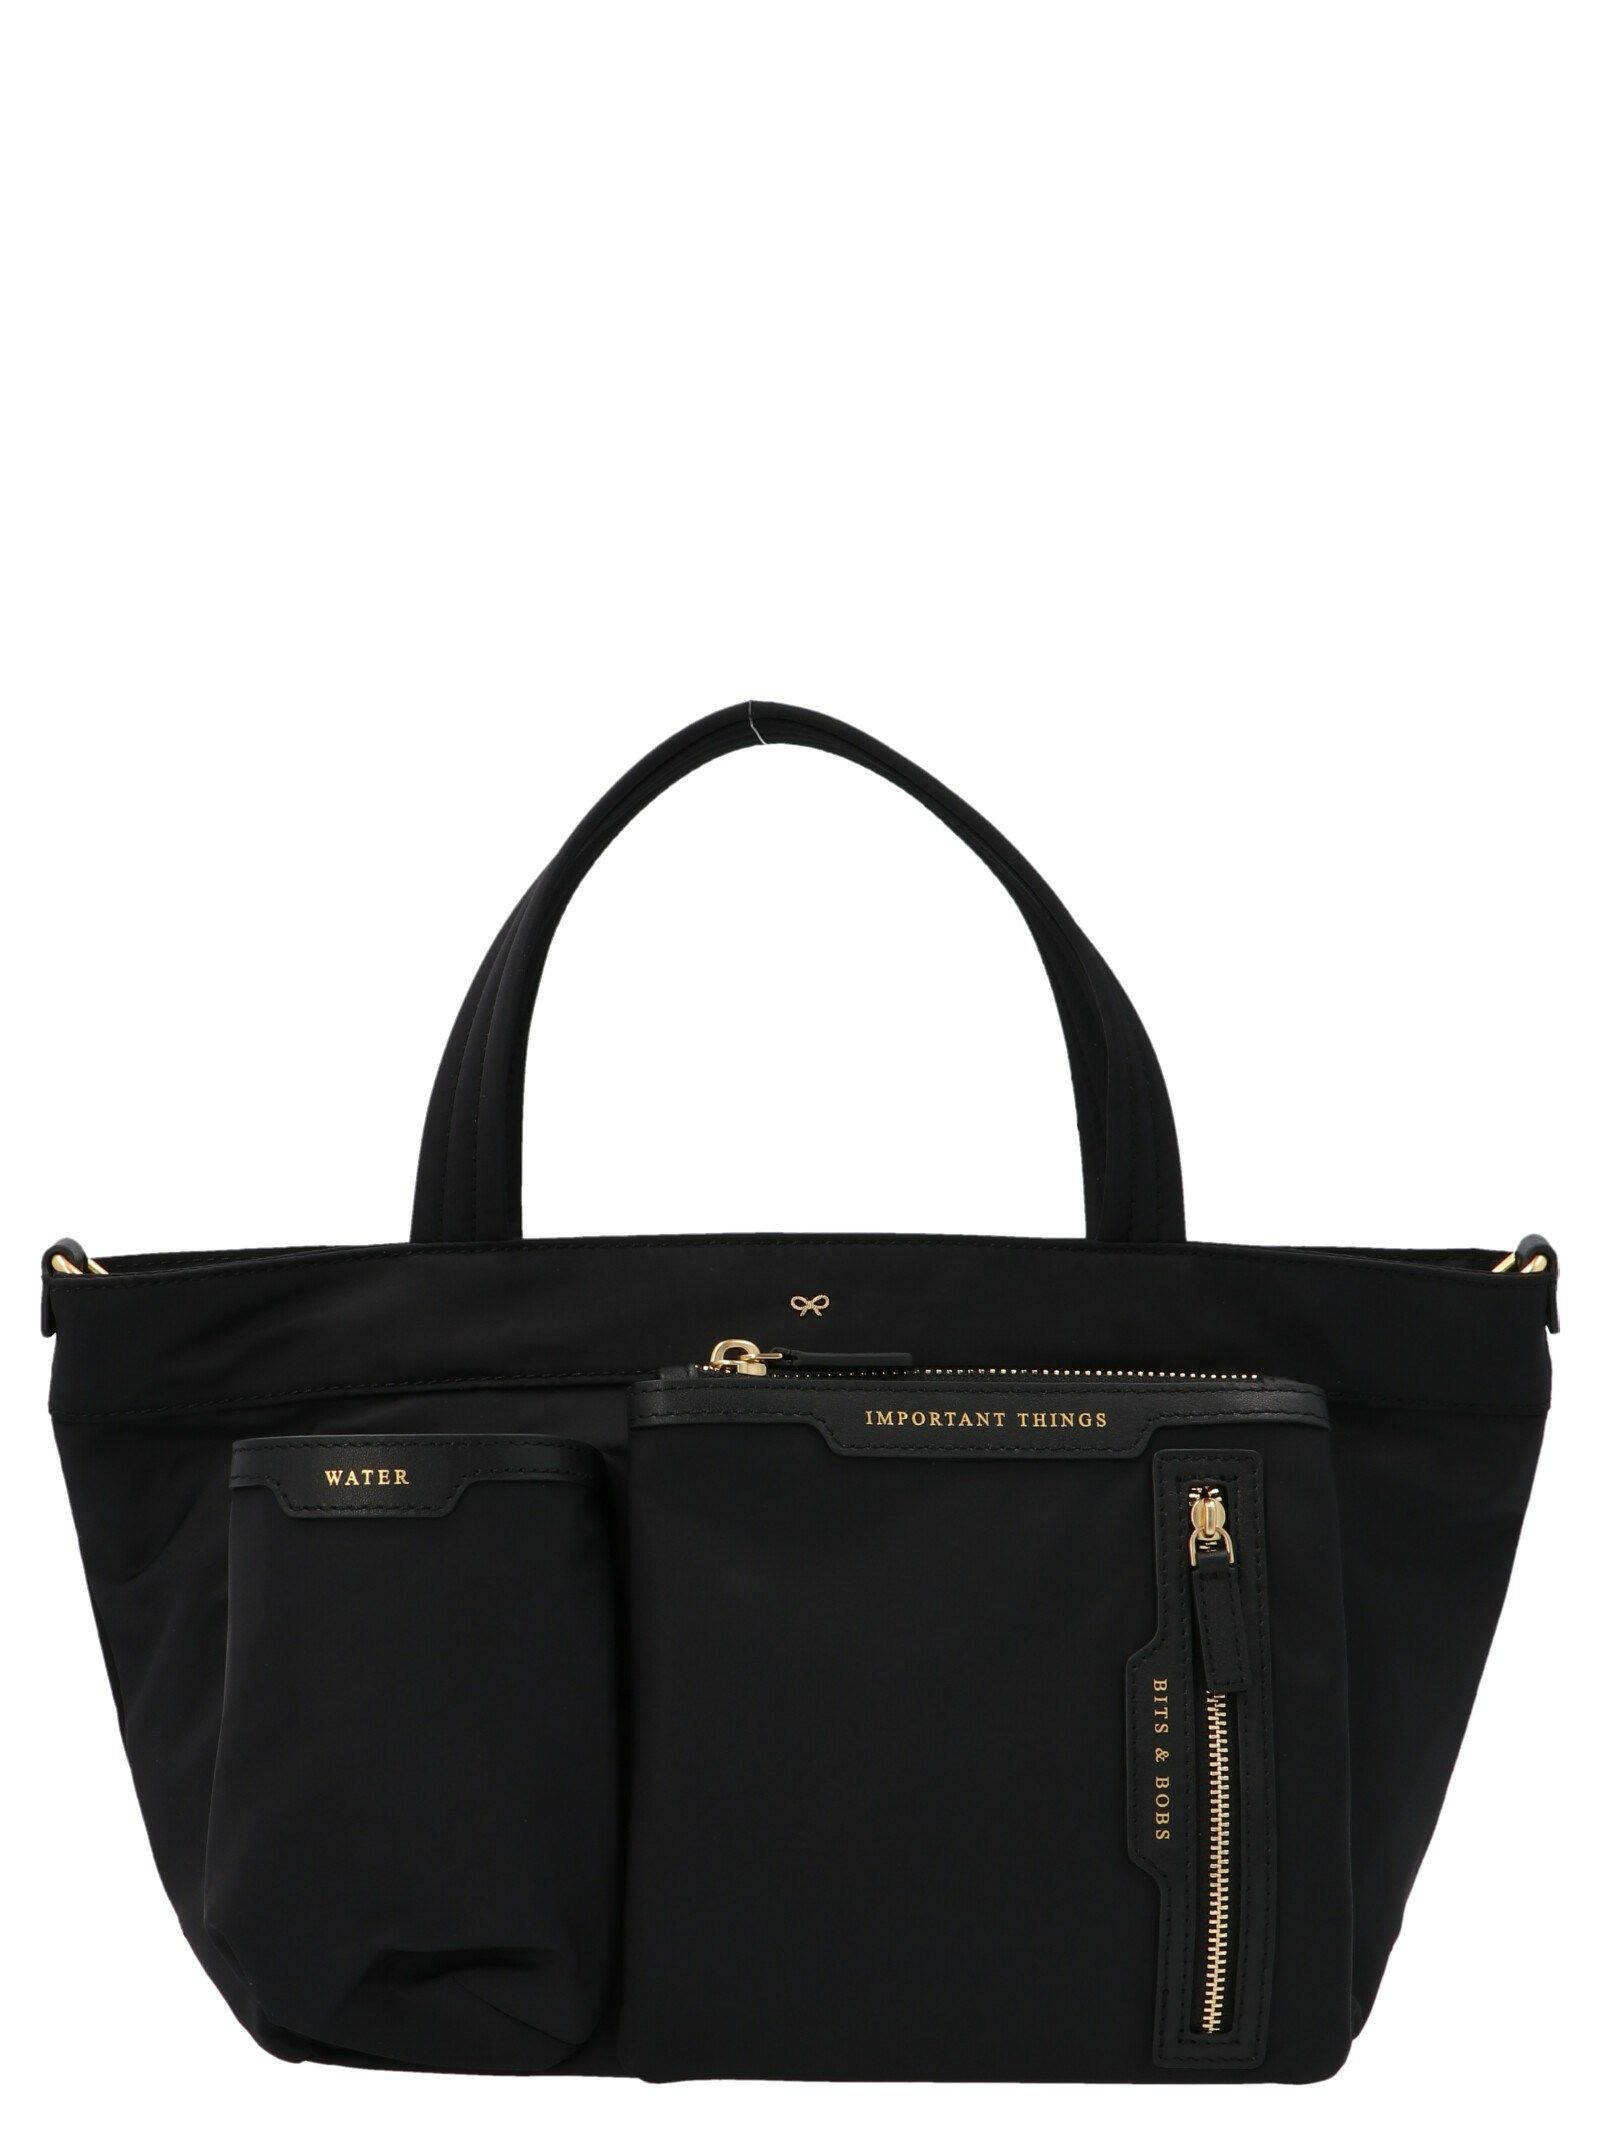 Anya Hindmarch ANYA HINDMARCH WOMEN'S BLACK OTHER MATERIALS TOTE